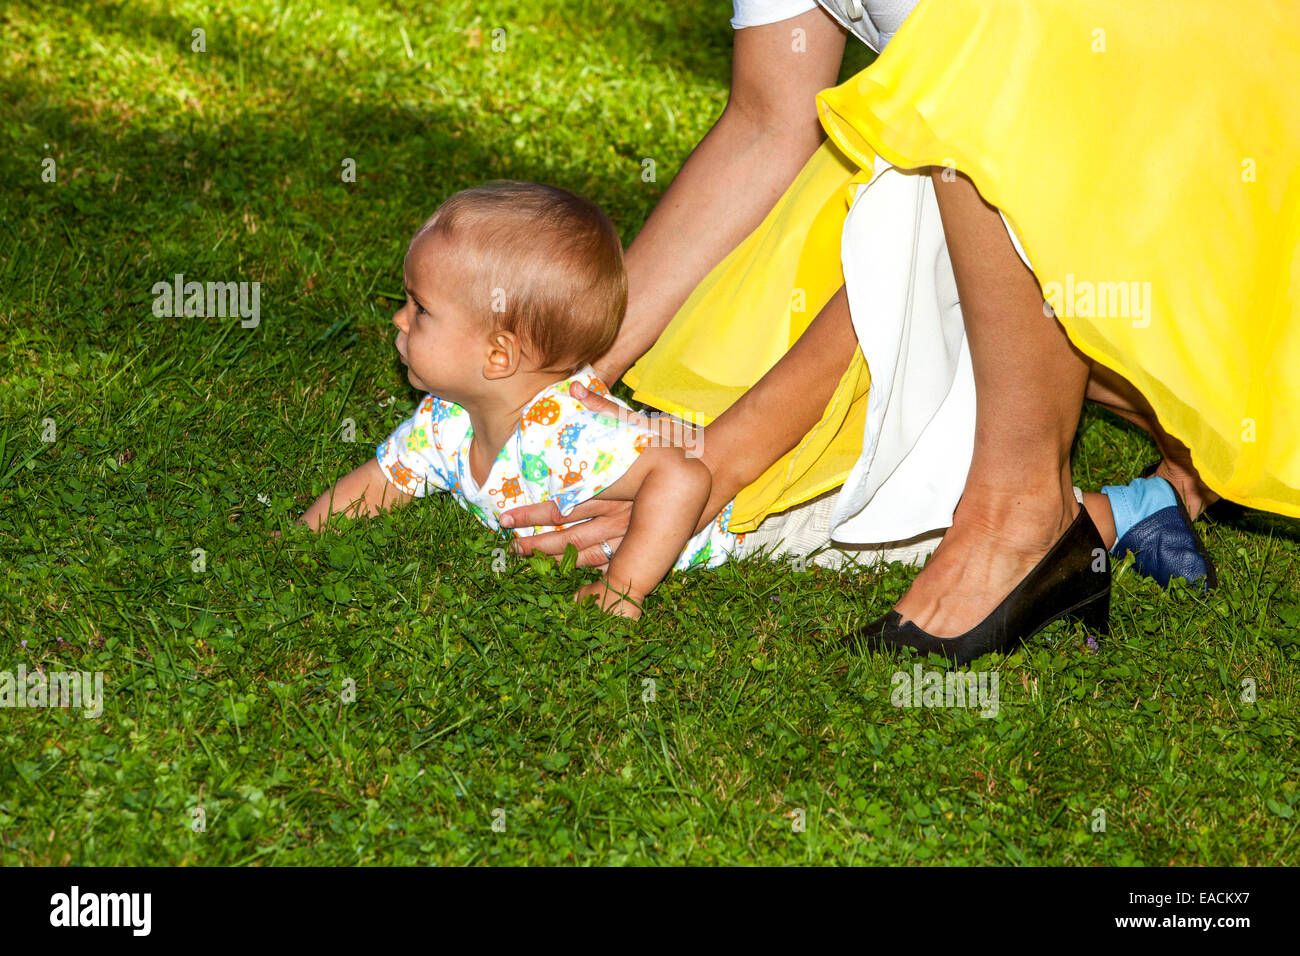 mother in a yellow dress, son, toddler, garden - Stock Image